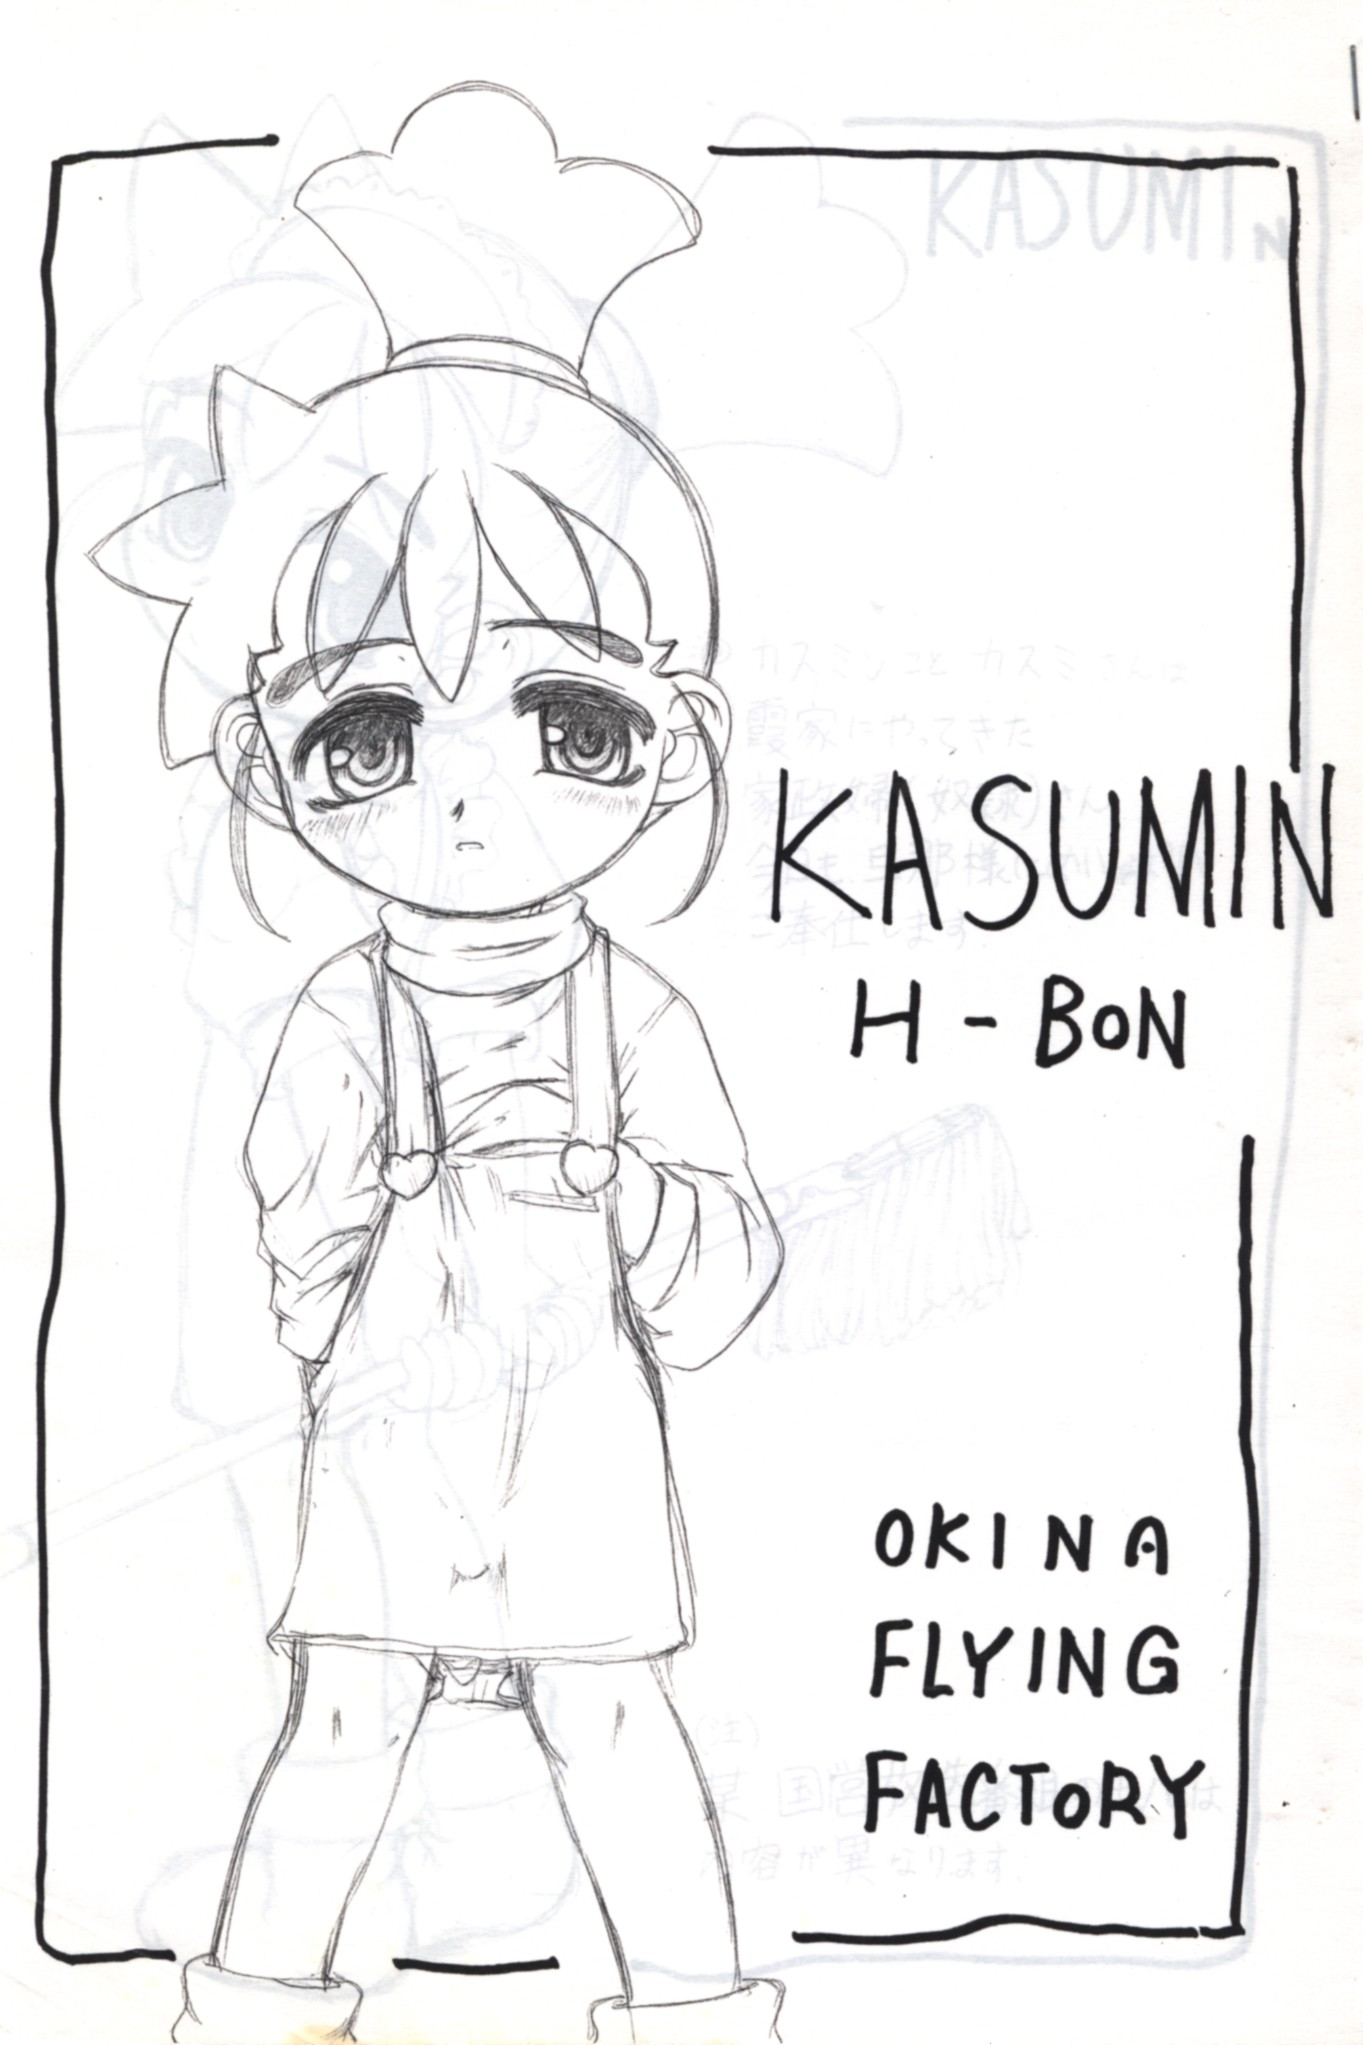 [Adult] Doujinshi (KASUMIN H-BON) / OKINA FLYING FACTORY